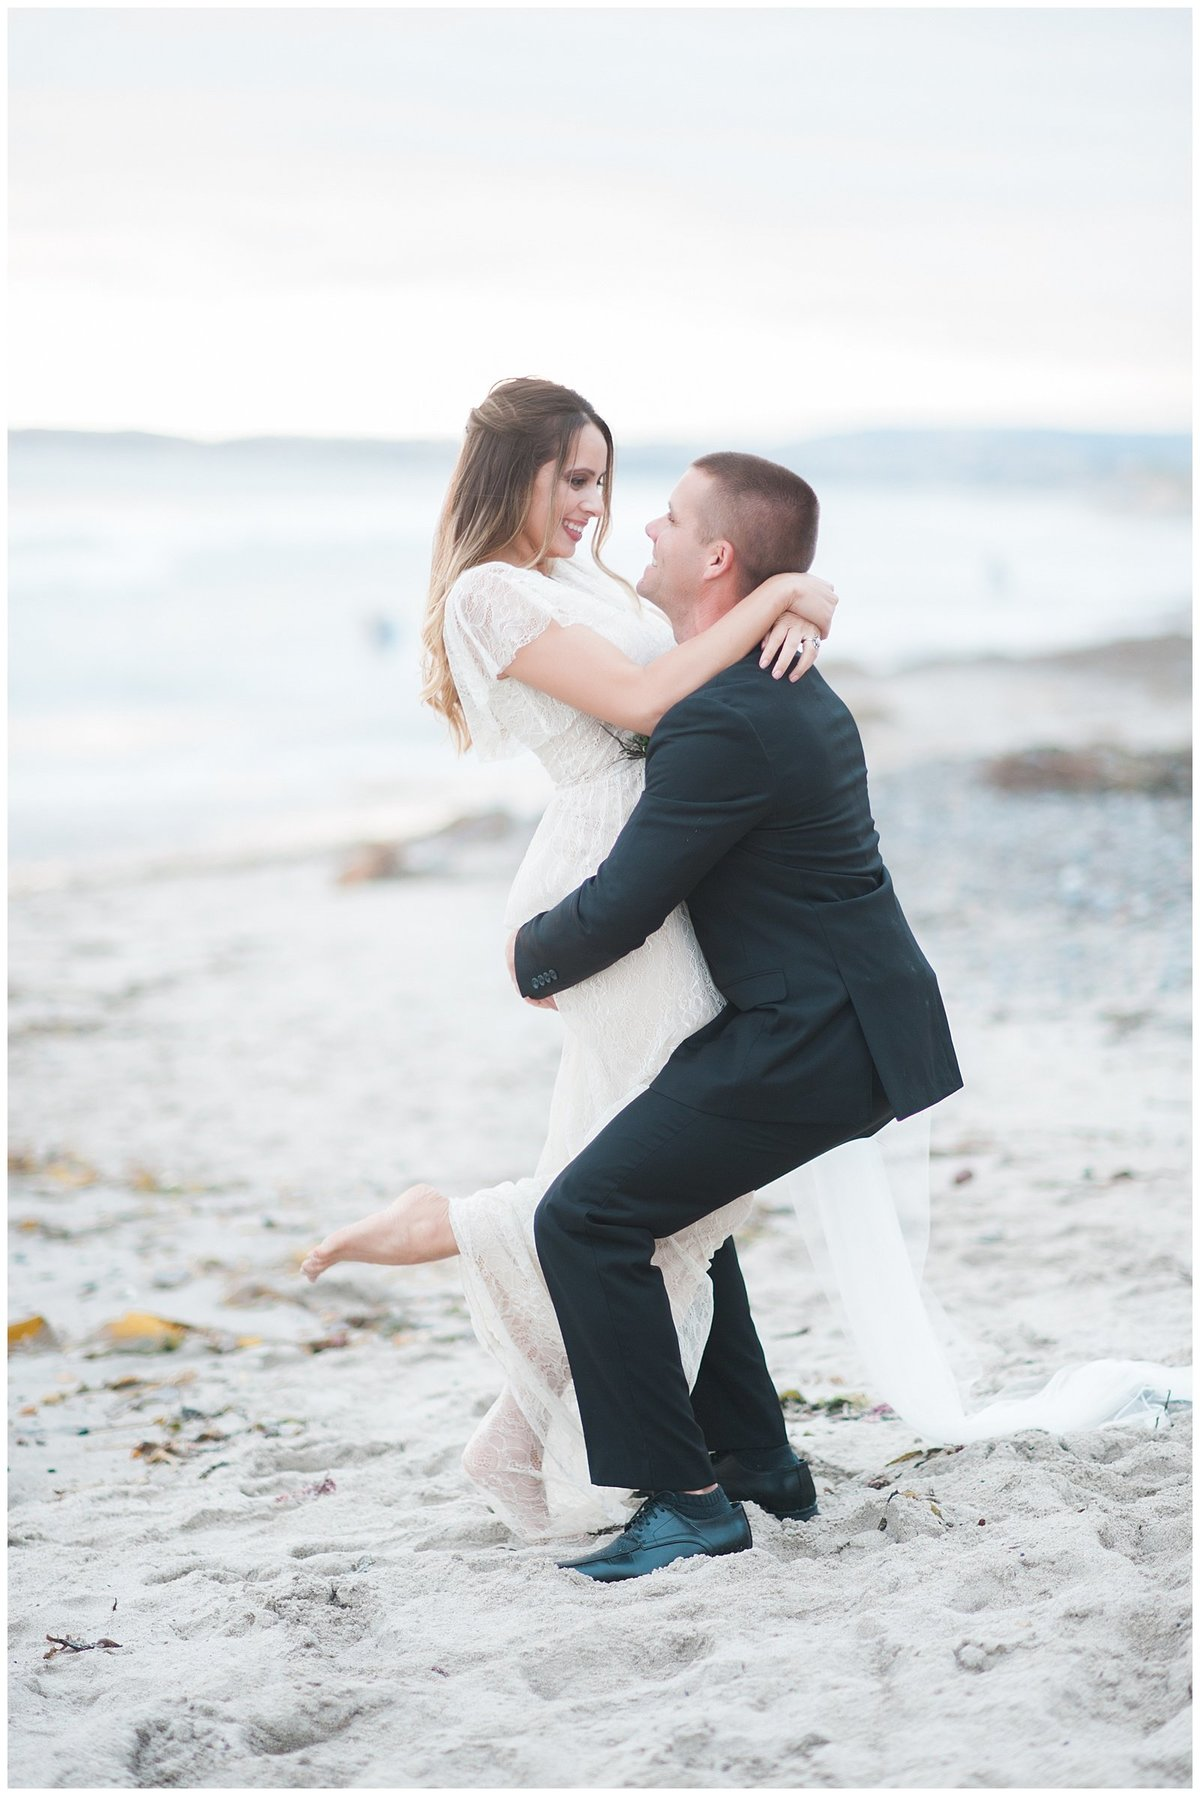 san clemente beach wedding elopement whimsical dreamy soft light socal photo037